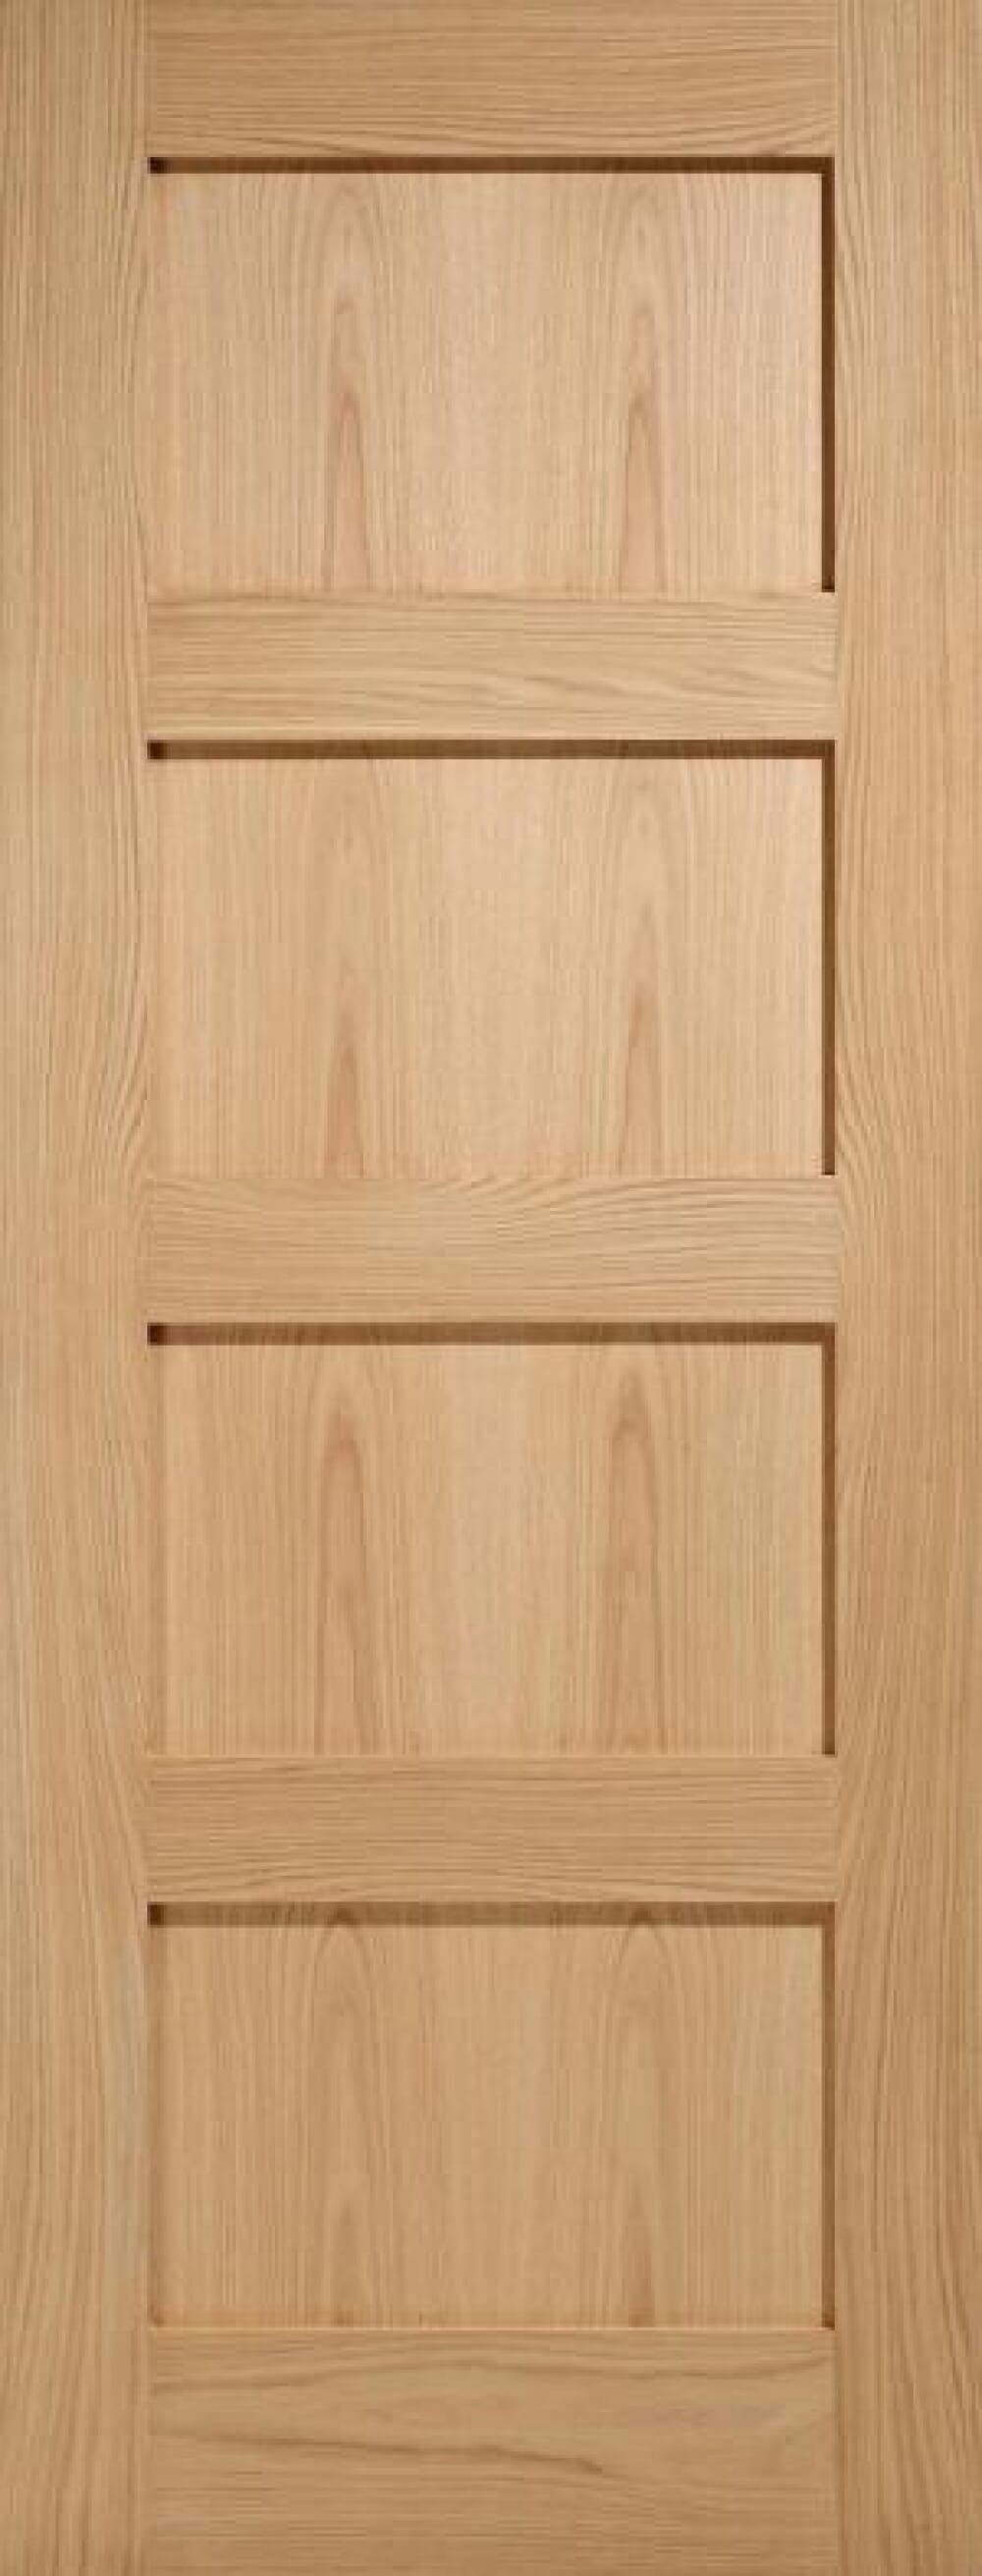 Oak Shaker 4p - Prefinished Image